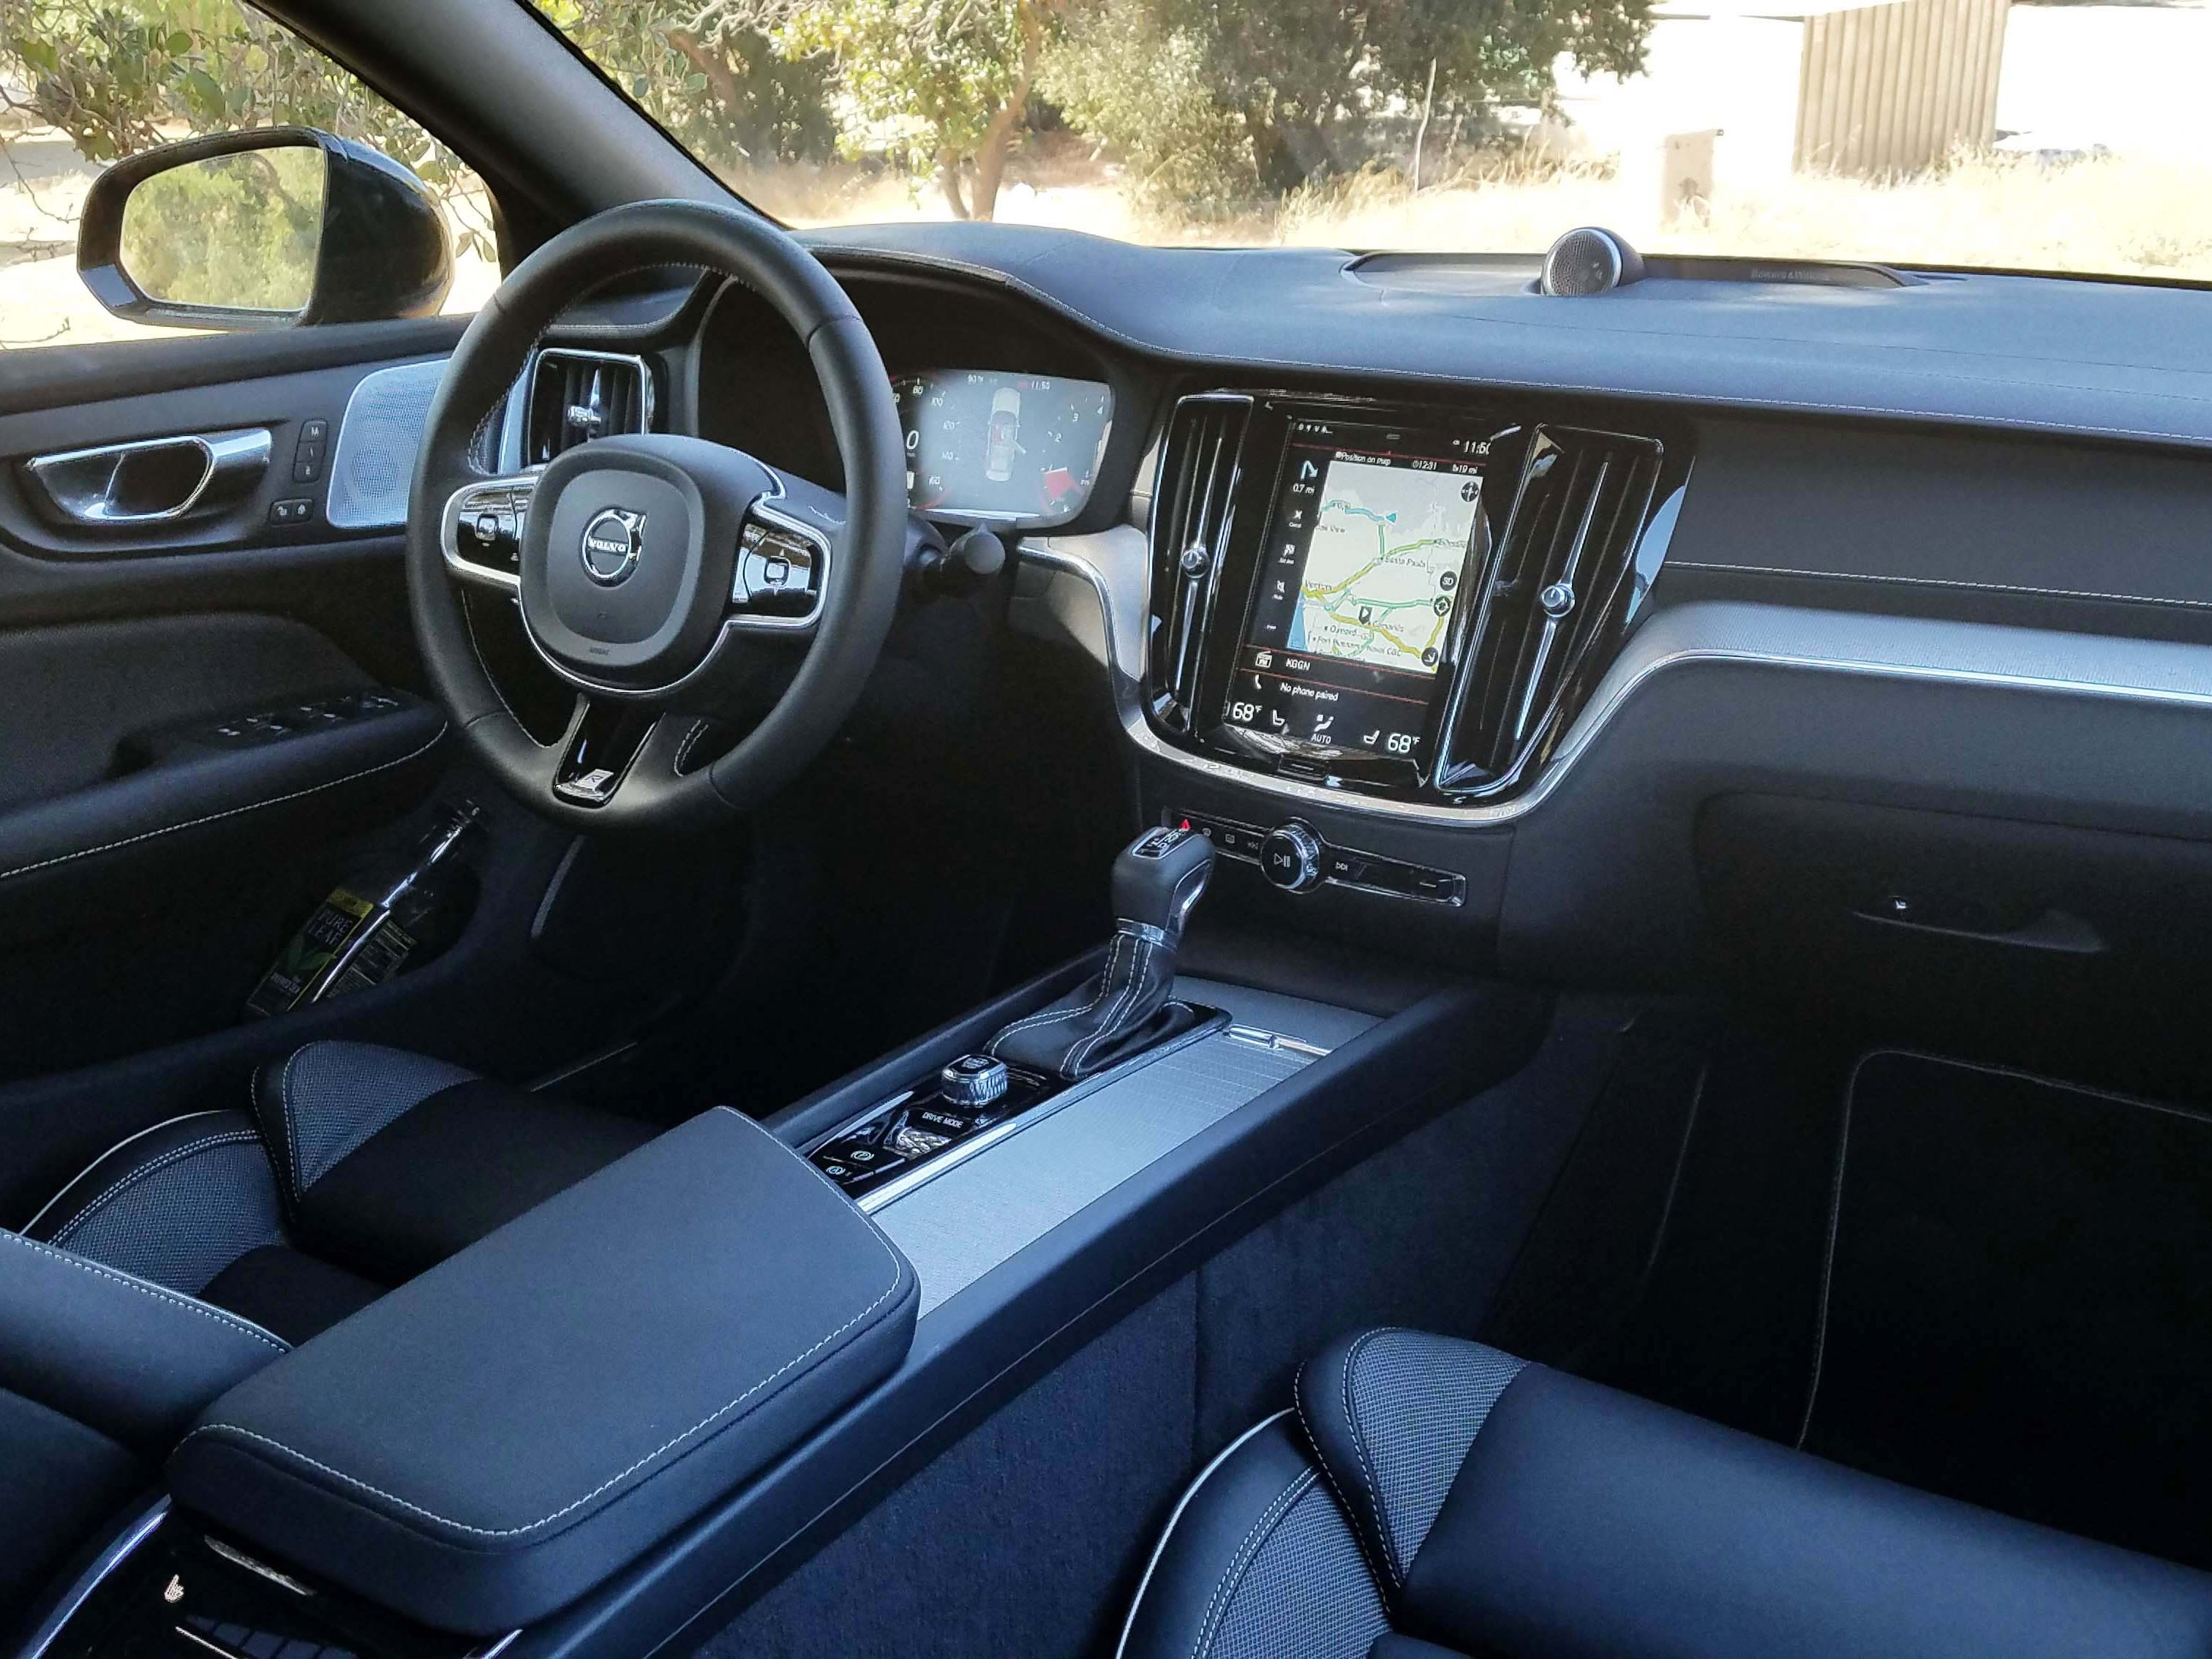 The interior of the 2019 Volvo S60 features comfy seats, a standard panoramic sunroof and unique console controls like a twist, rectangular starter button.